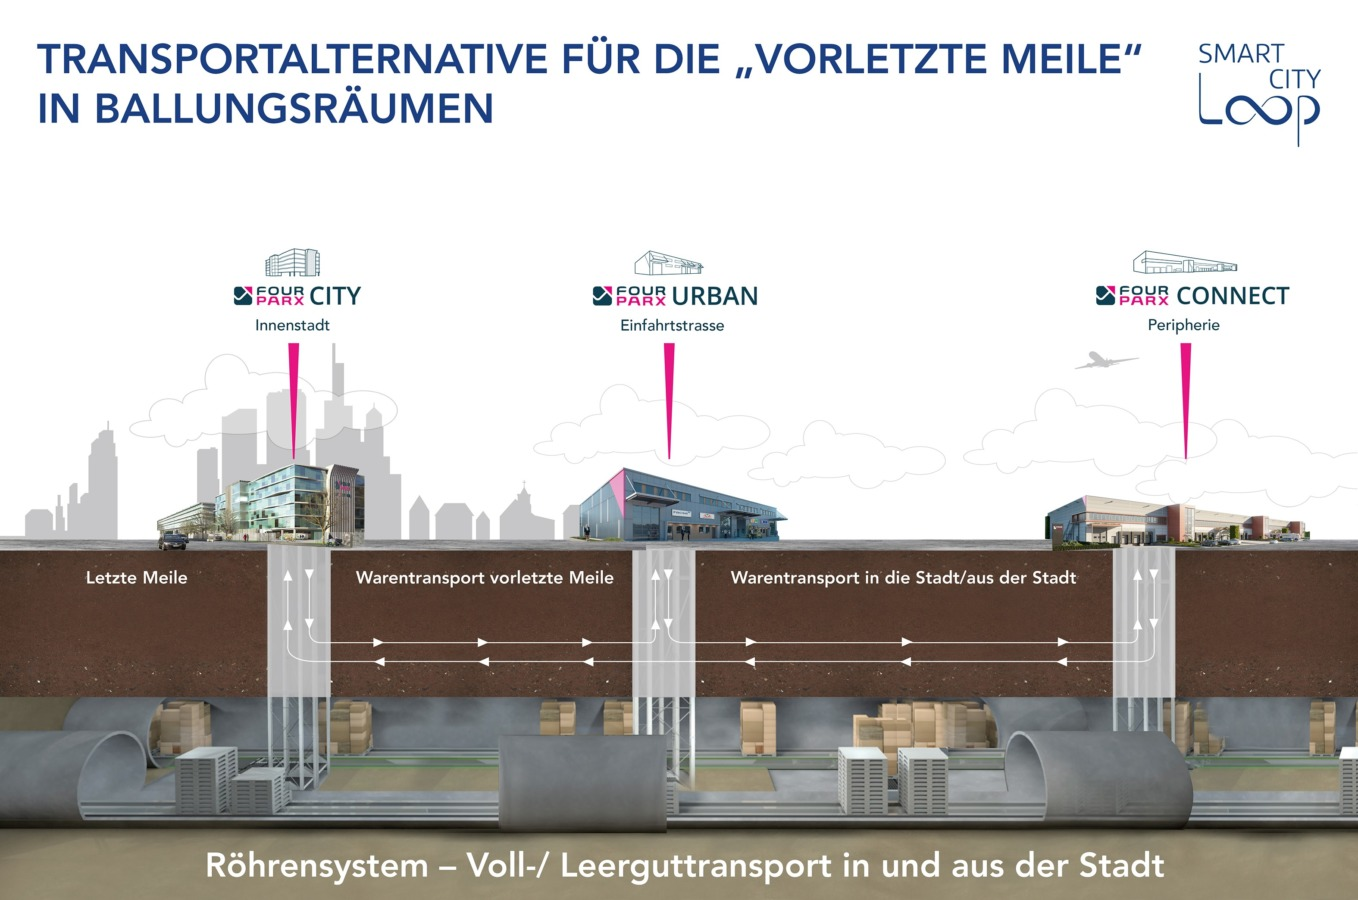 Smart City Logistik mit Röhrensystem f